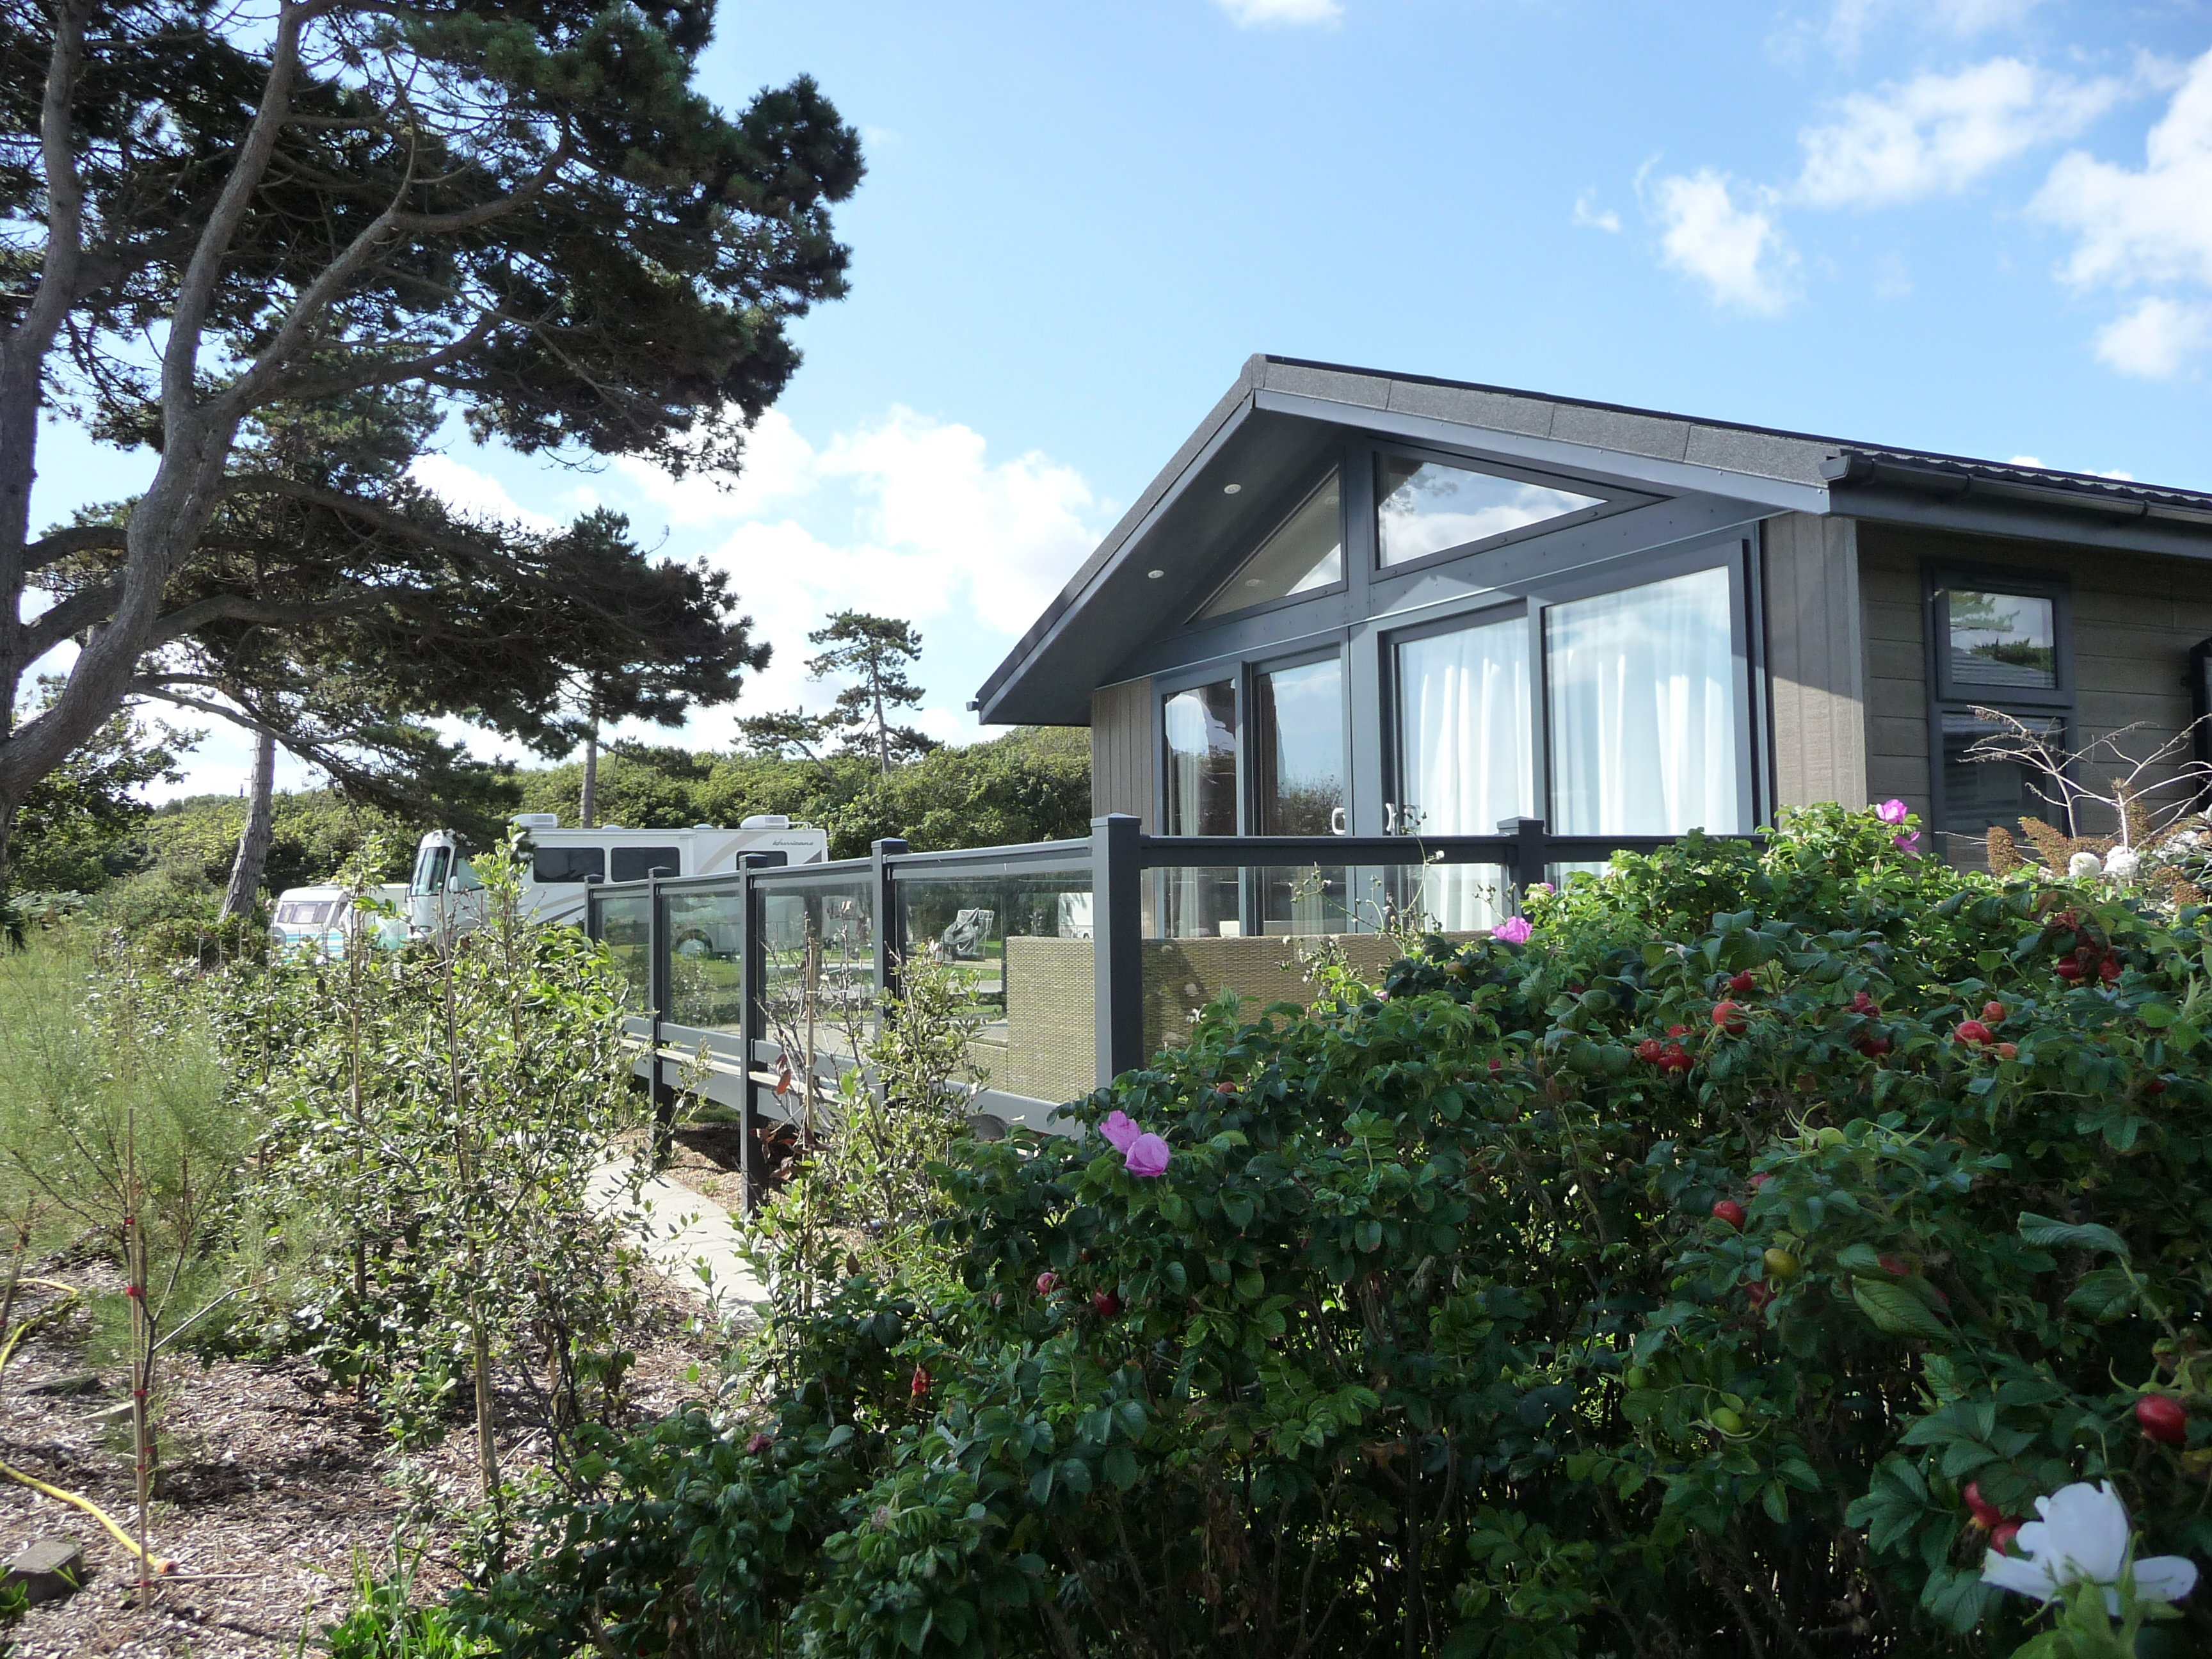 Swell Luxury Lodge Holidays Beach View Holiday Park Download Free Architecture Designs Scobabritishbridgeorg